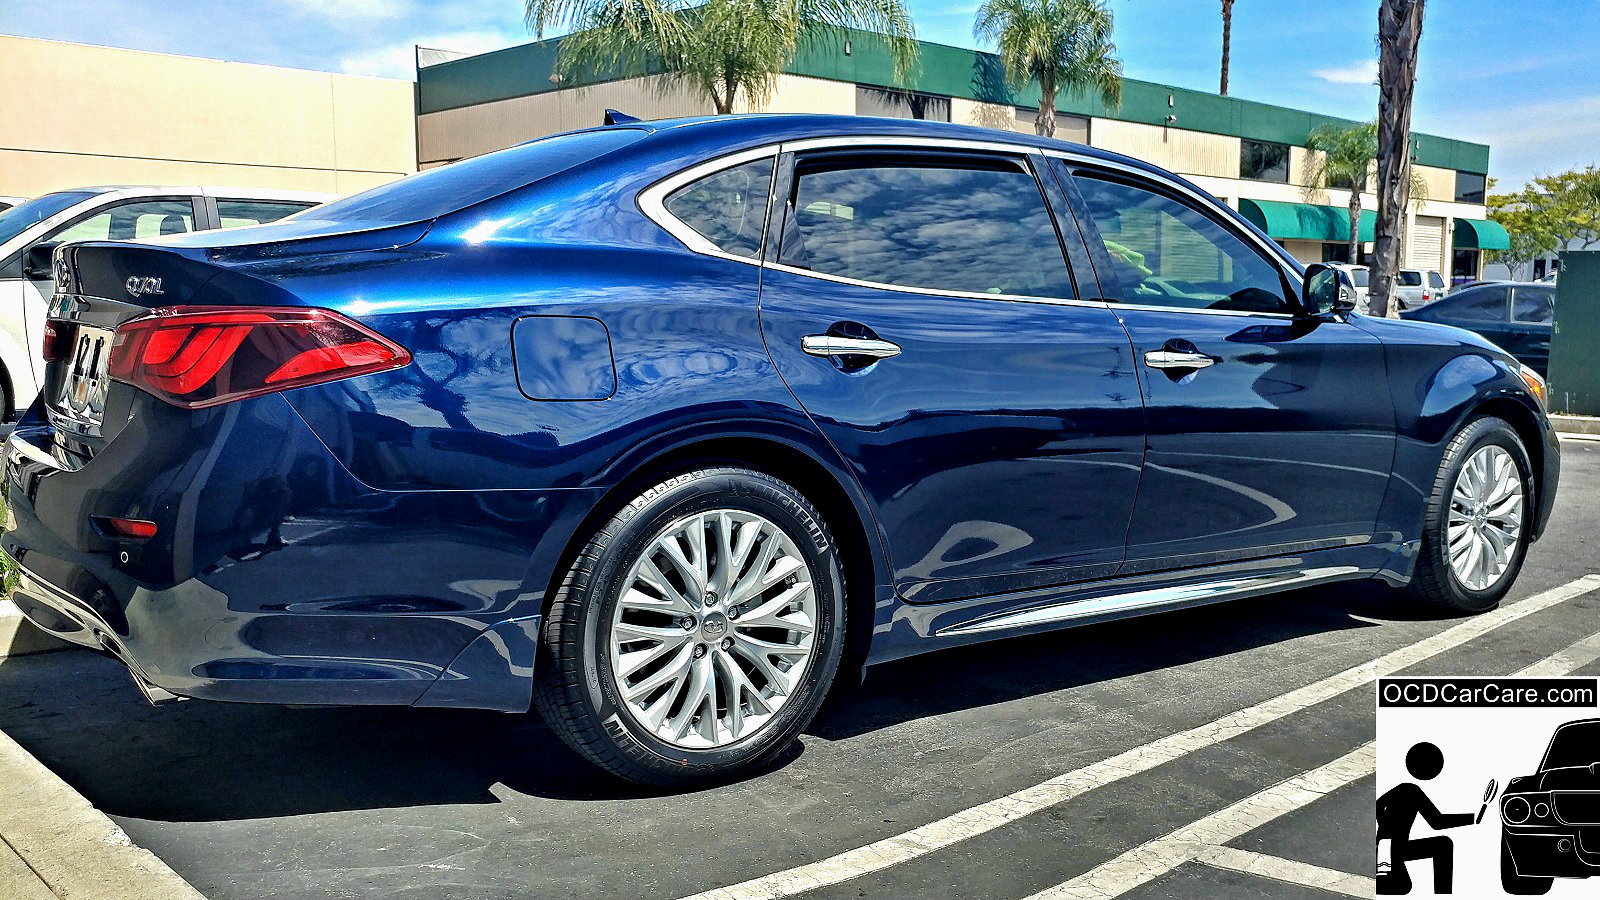 This Infinity Q70 radiates after Ceramic Nano Coating Installation by OCDCarCare Los Angeles